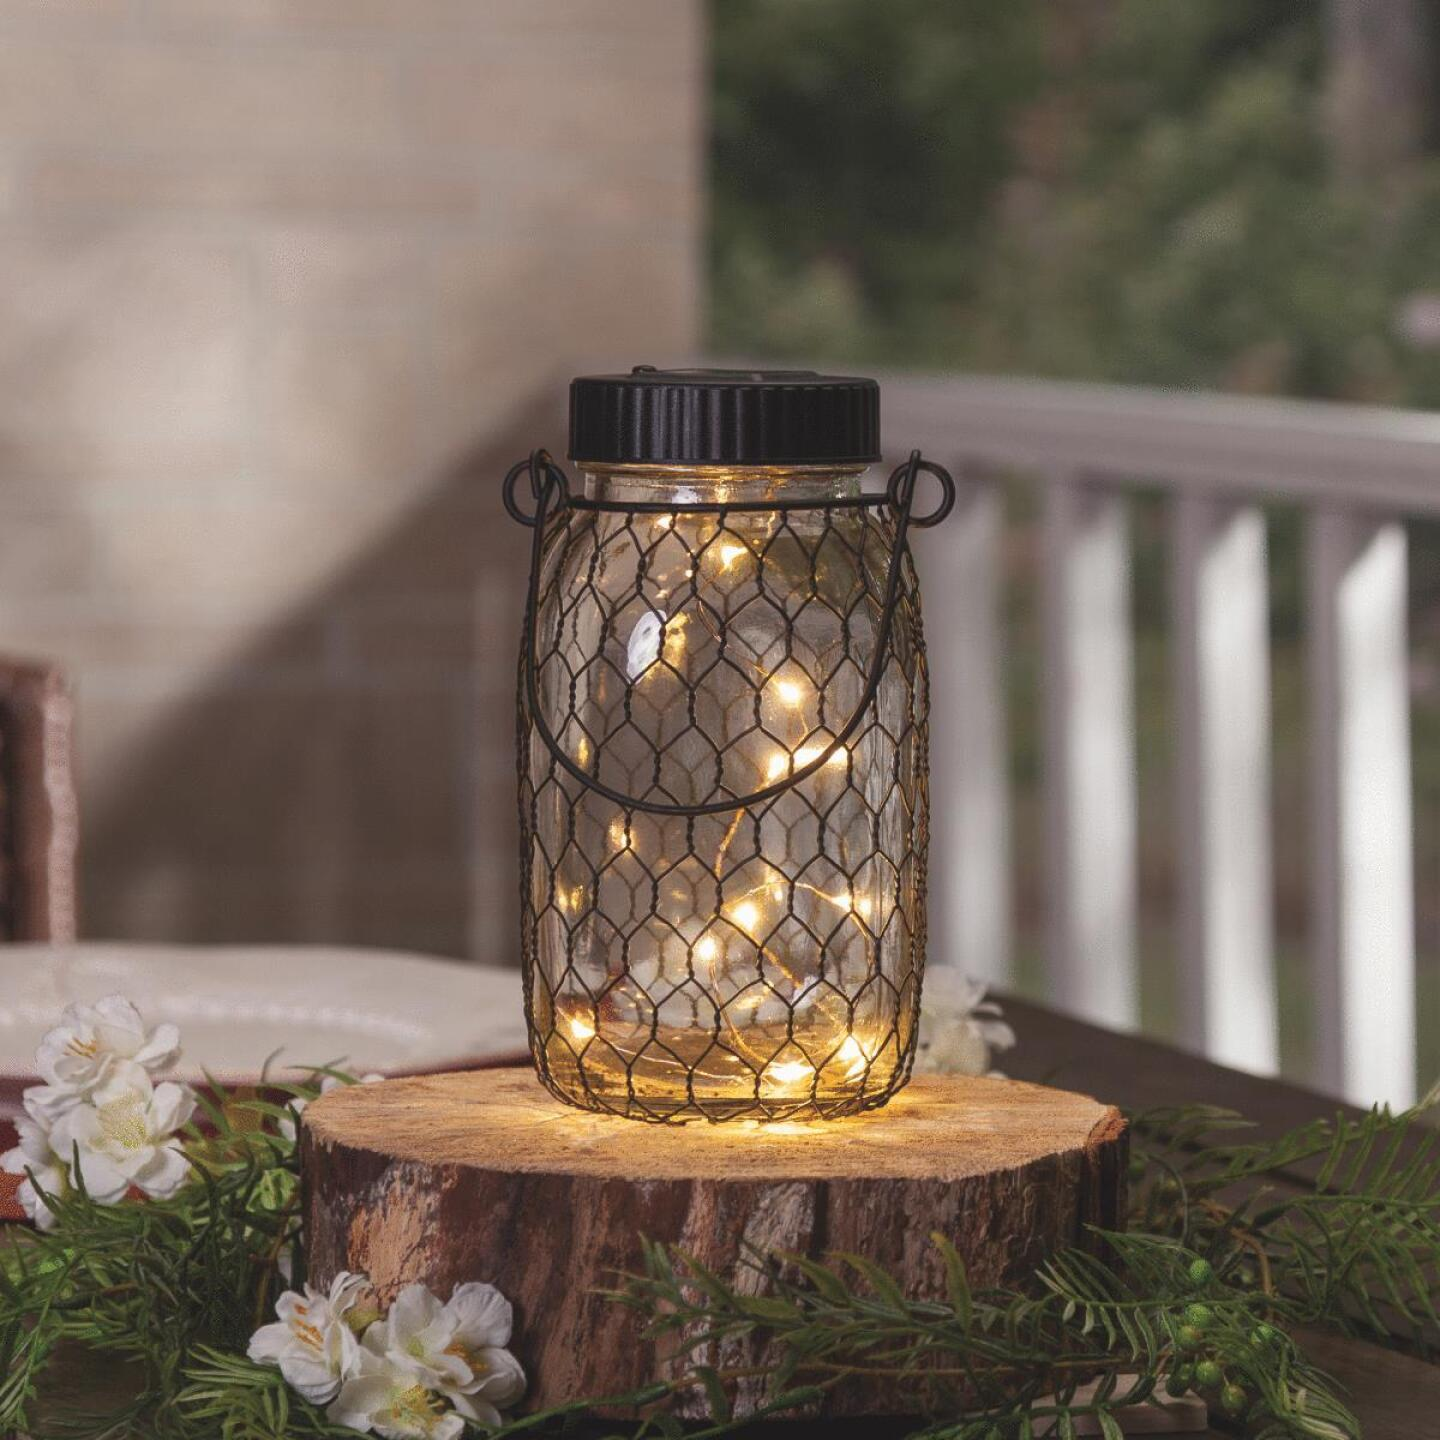 Gerson Everlasting Glow 6.9 In. H. x 2.75 In. Dia. Black Top Mason Jar LED Solar Lantern Image 2